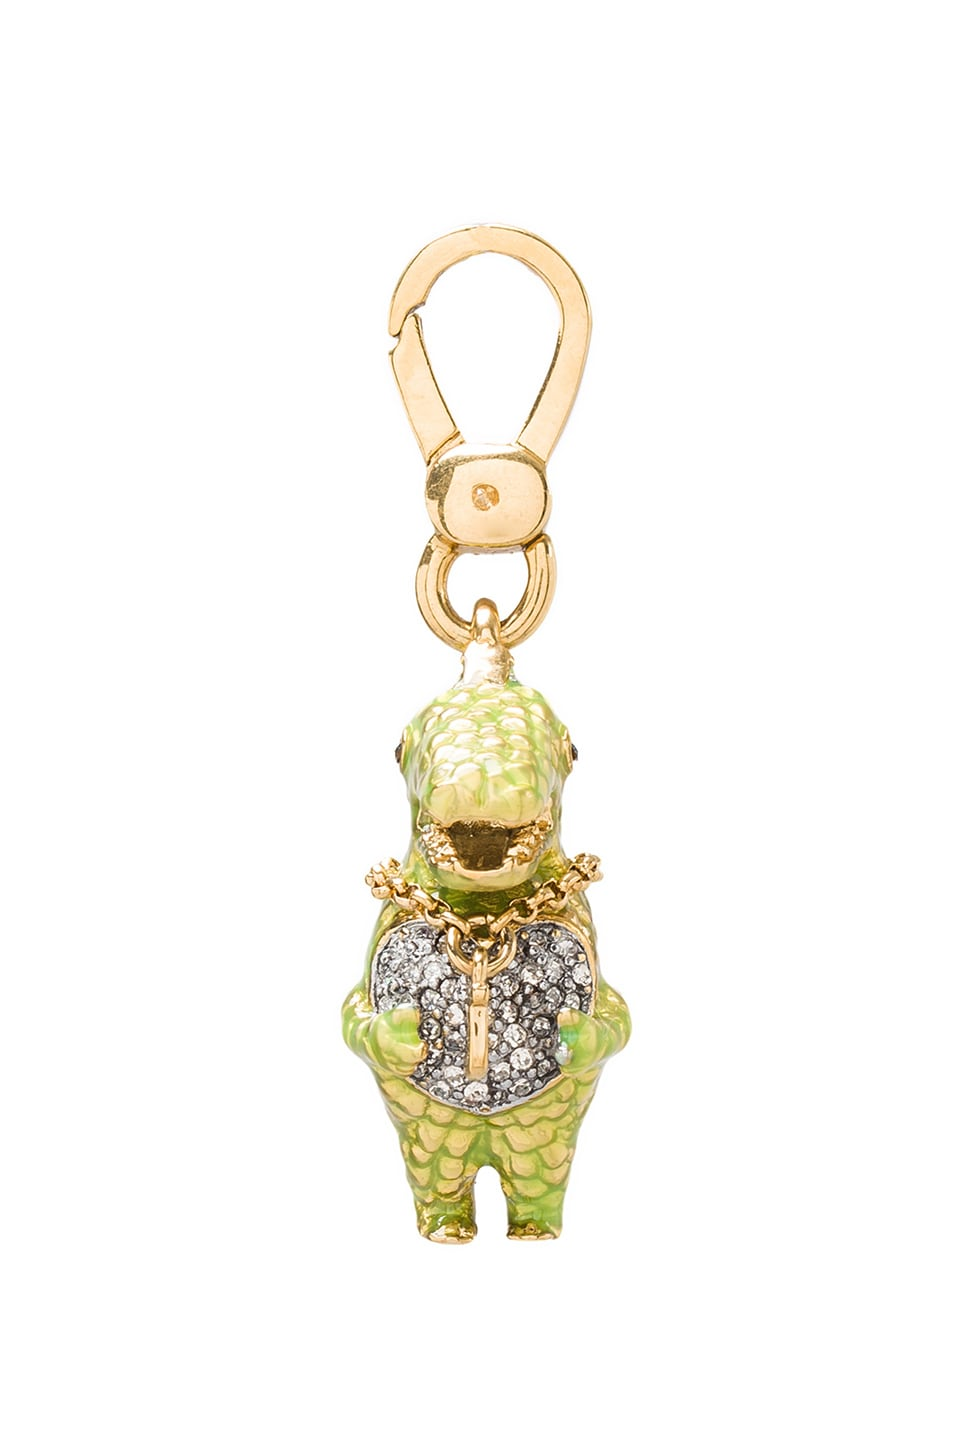 Juicy Couture Dinosaur Charm in Gold